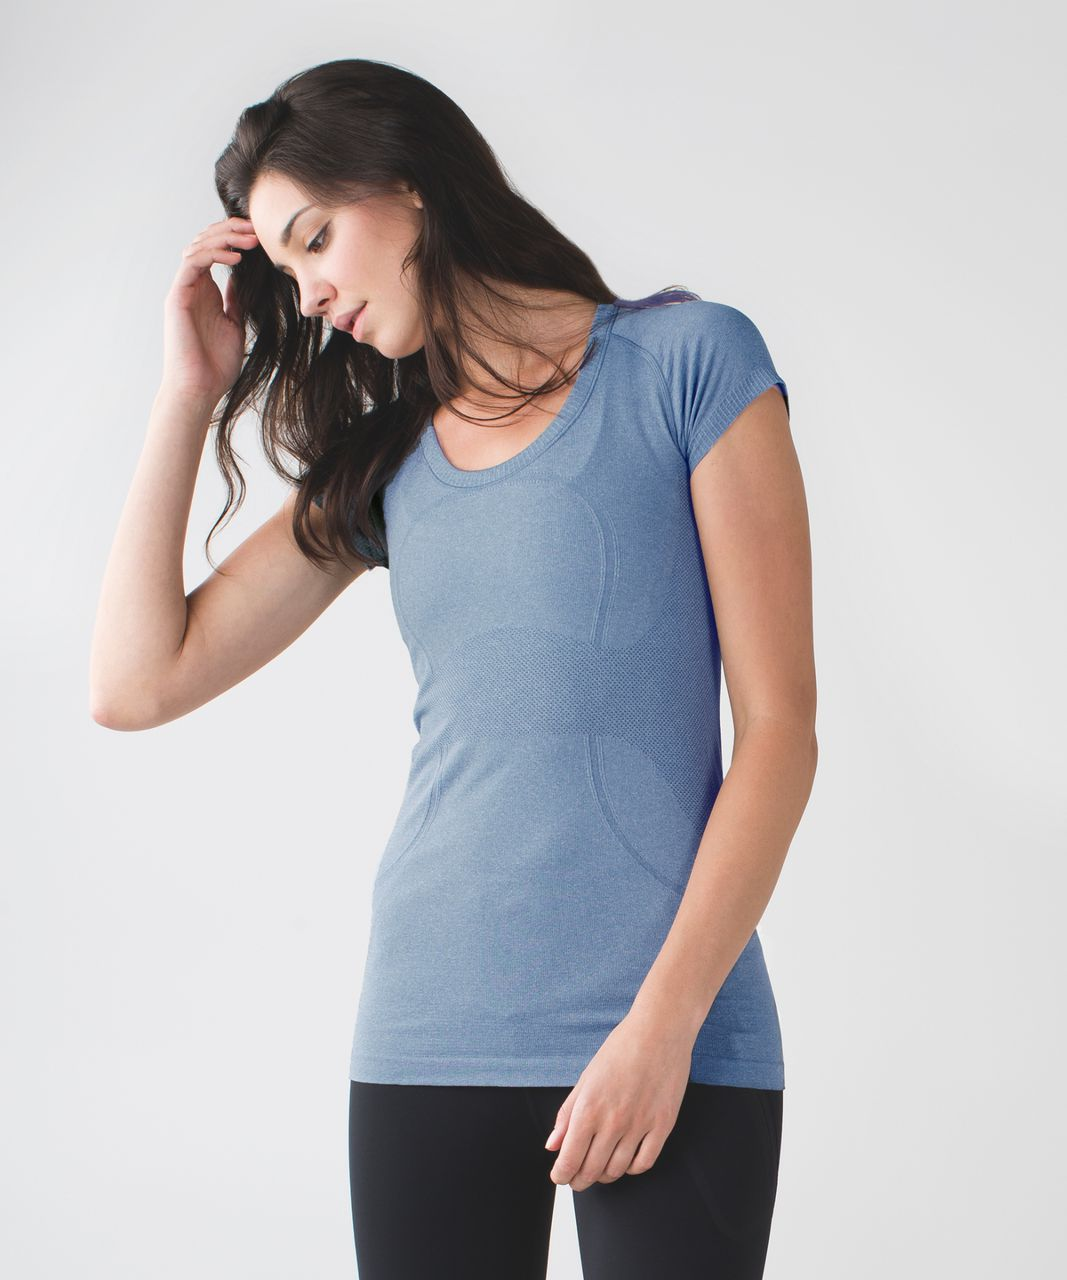 Lululemon Swiftly Tech Short Sleeve Scoop - Heathered Blue Denim